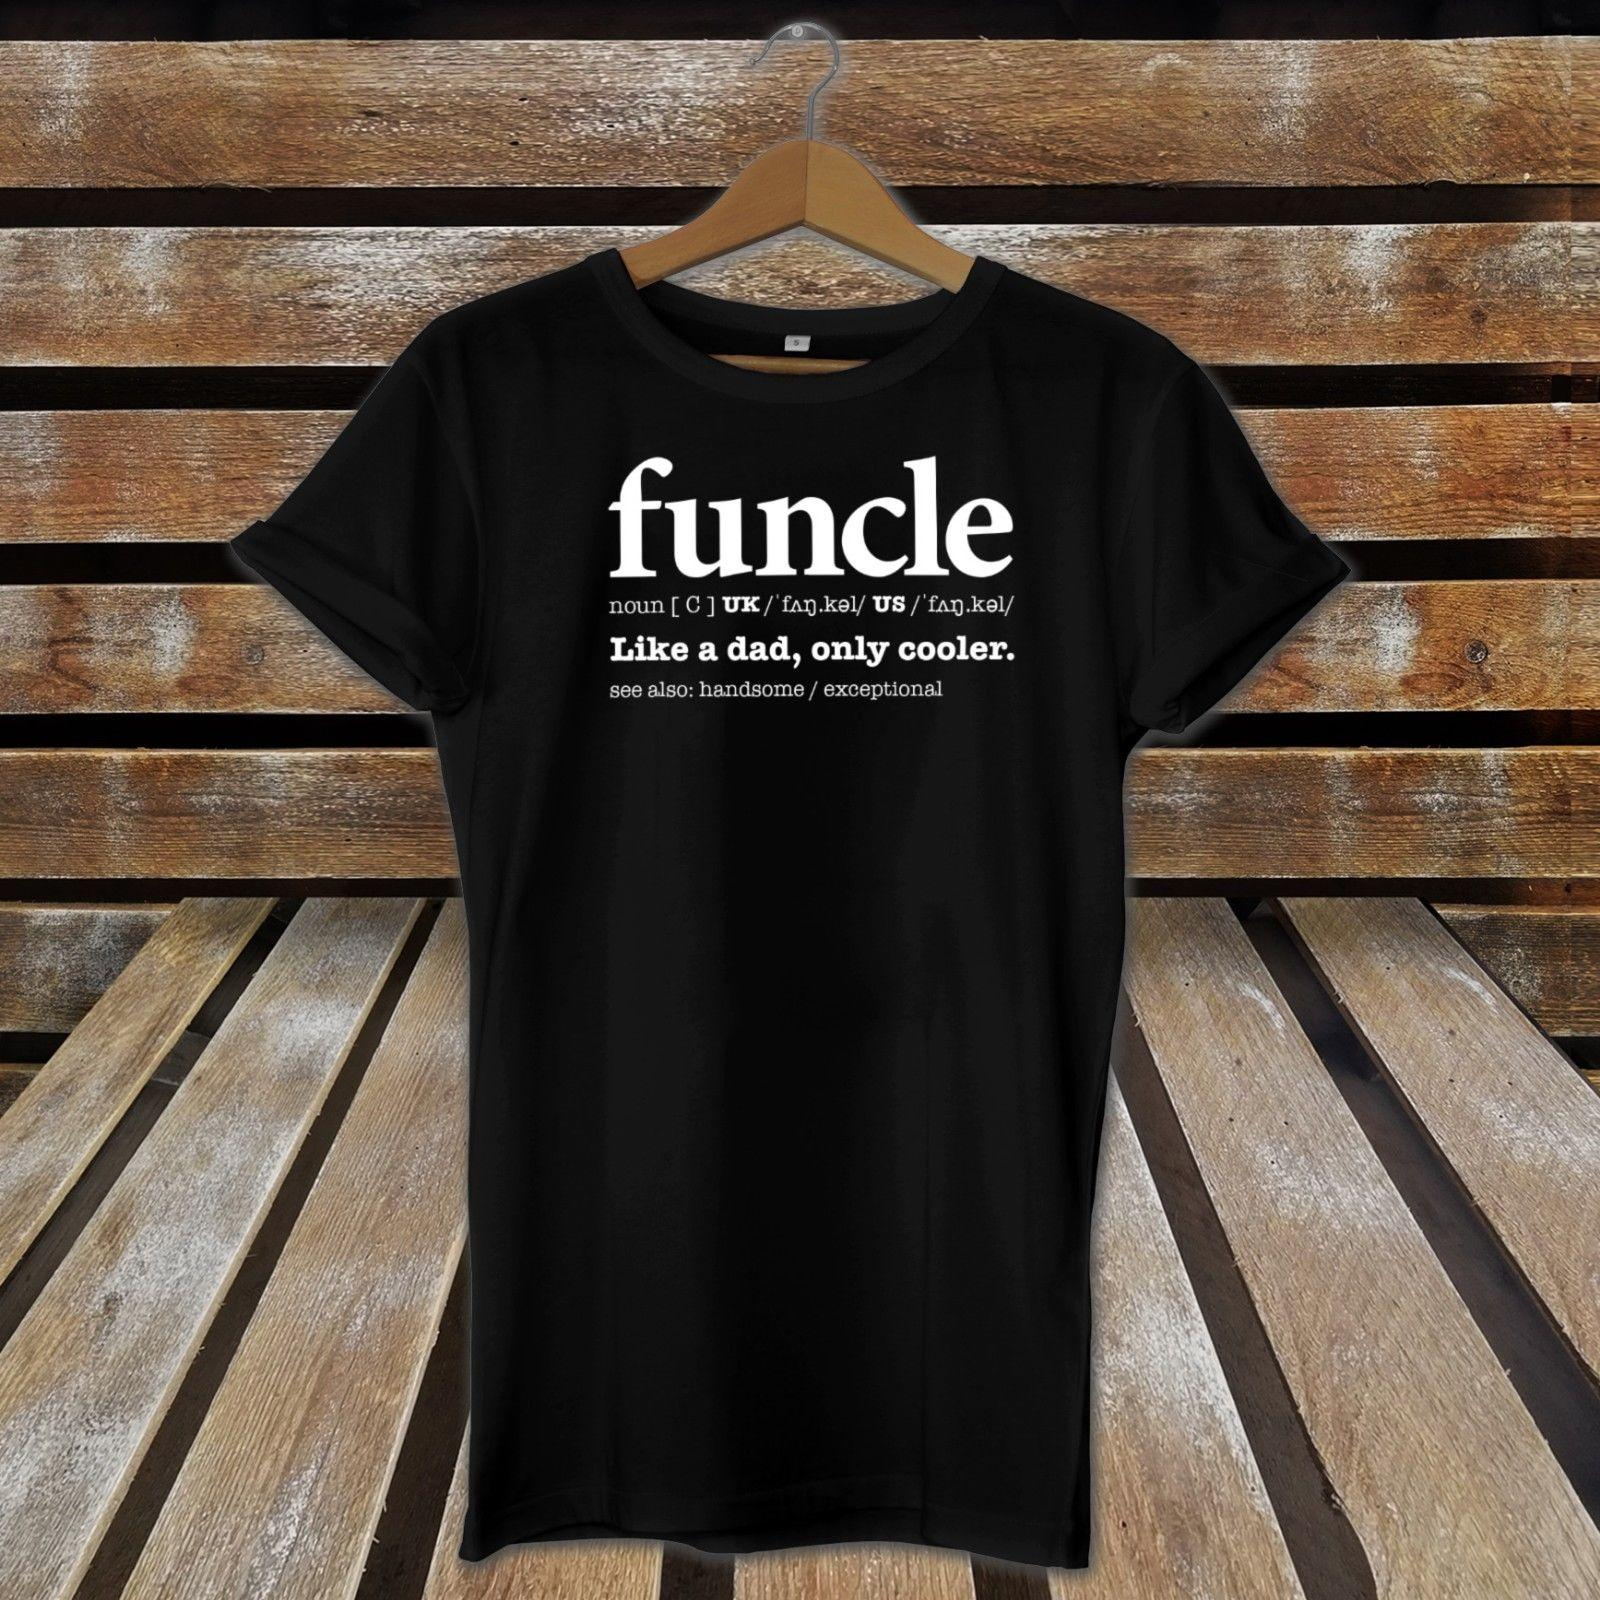 261352db Funcle Like A Dad Only Cooler Novelty Cute Father'S Day T Shirt / Top For  Uncle Funny Unisex Casual Tee Gift Hilarious Shirts Funky T Shirts Online  From ...